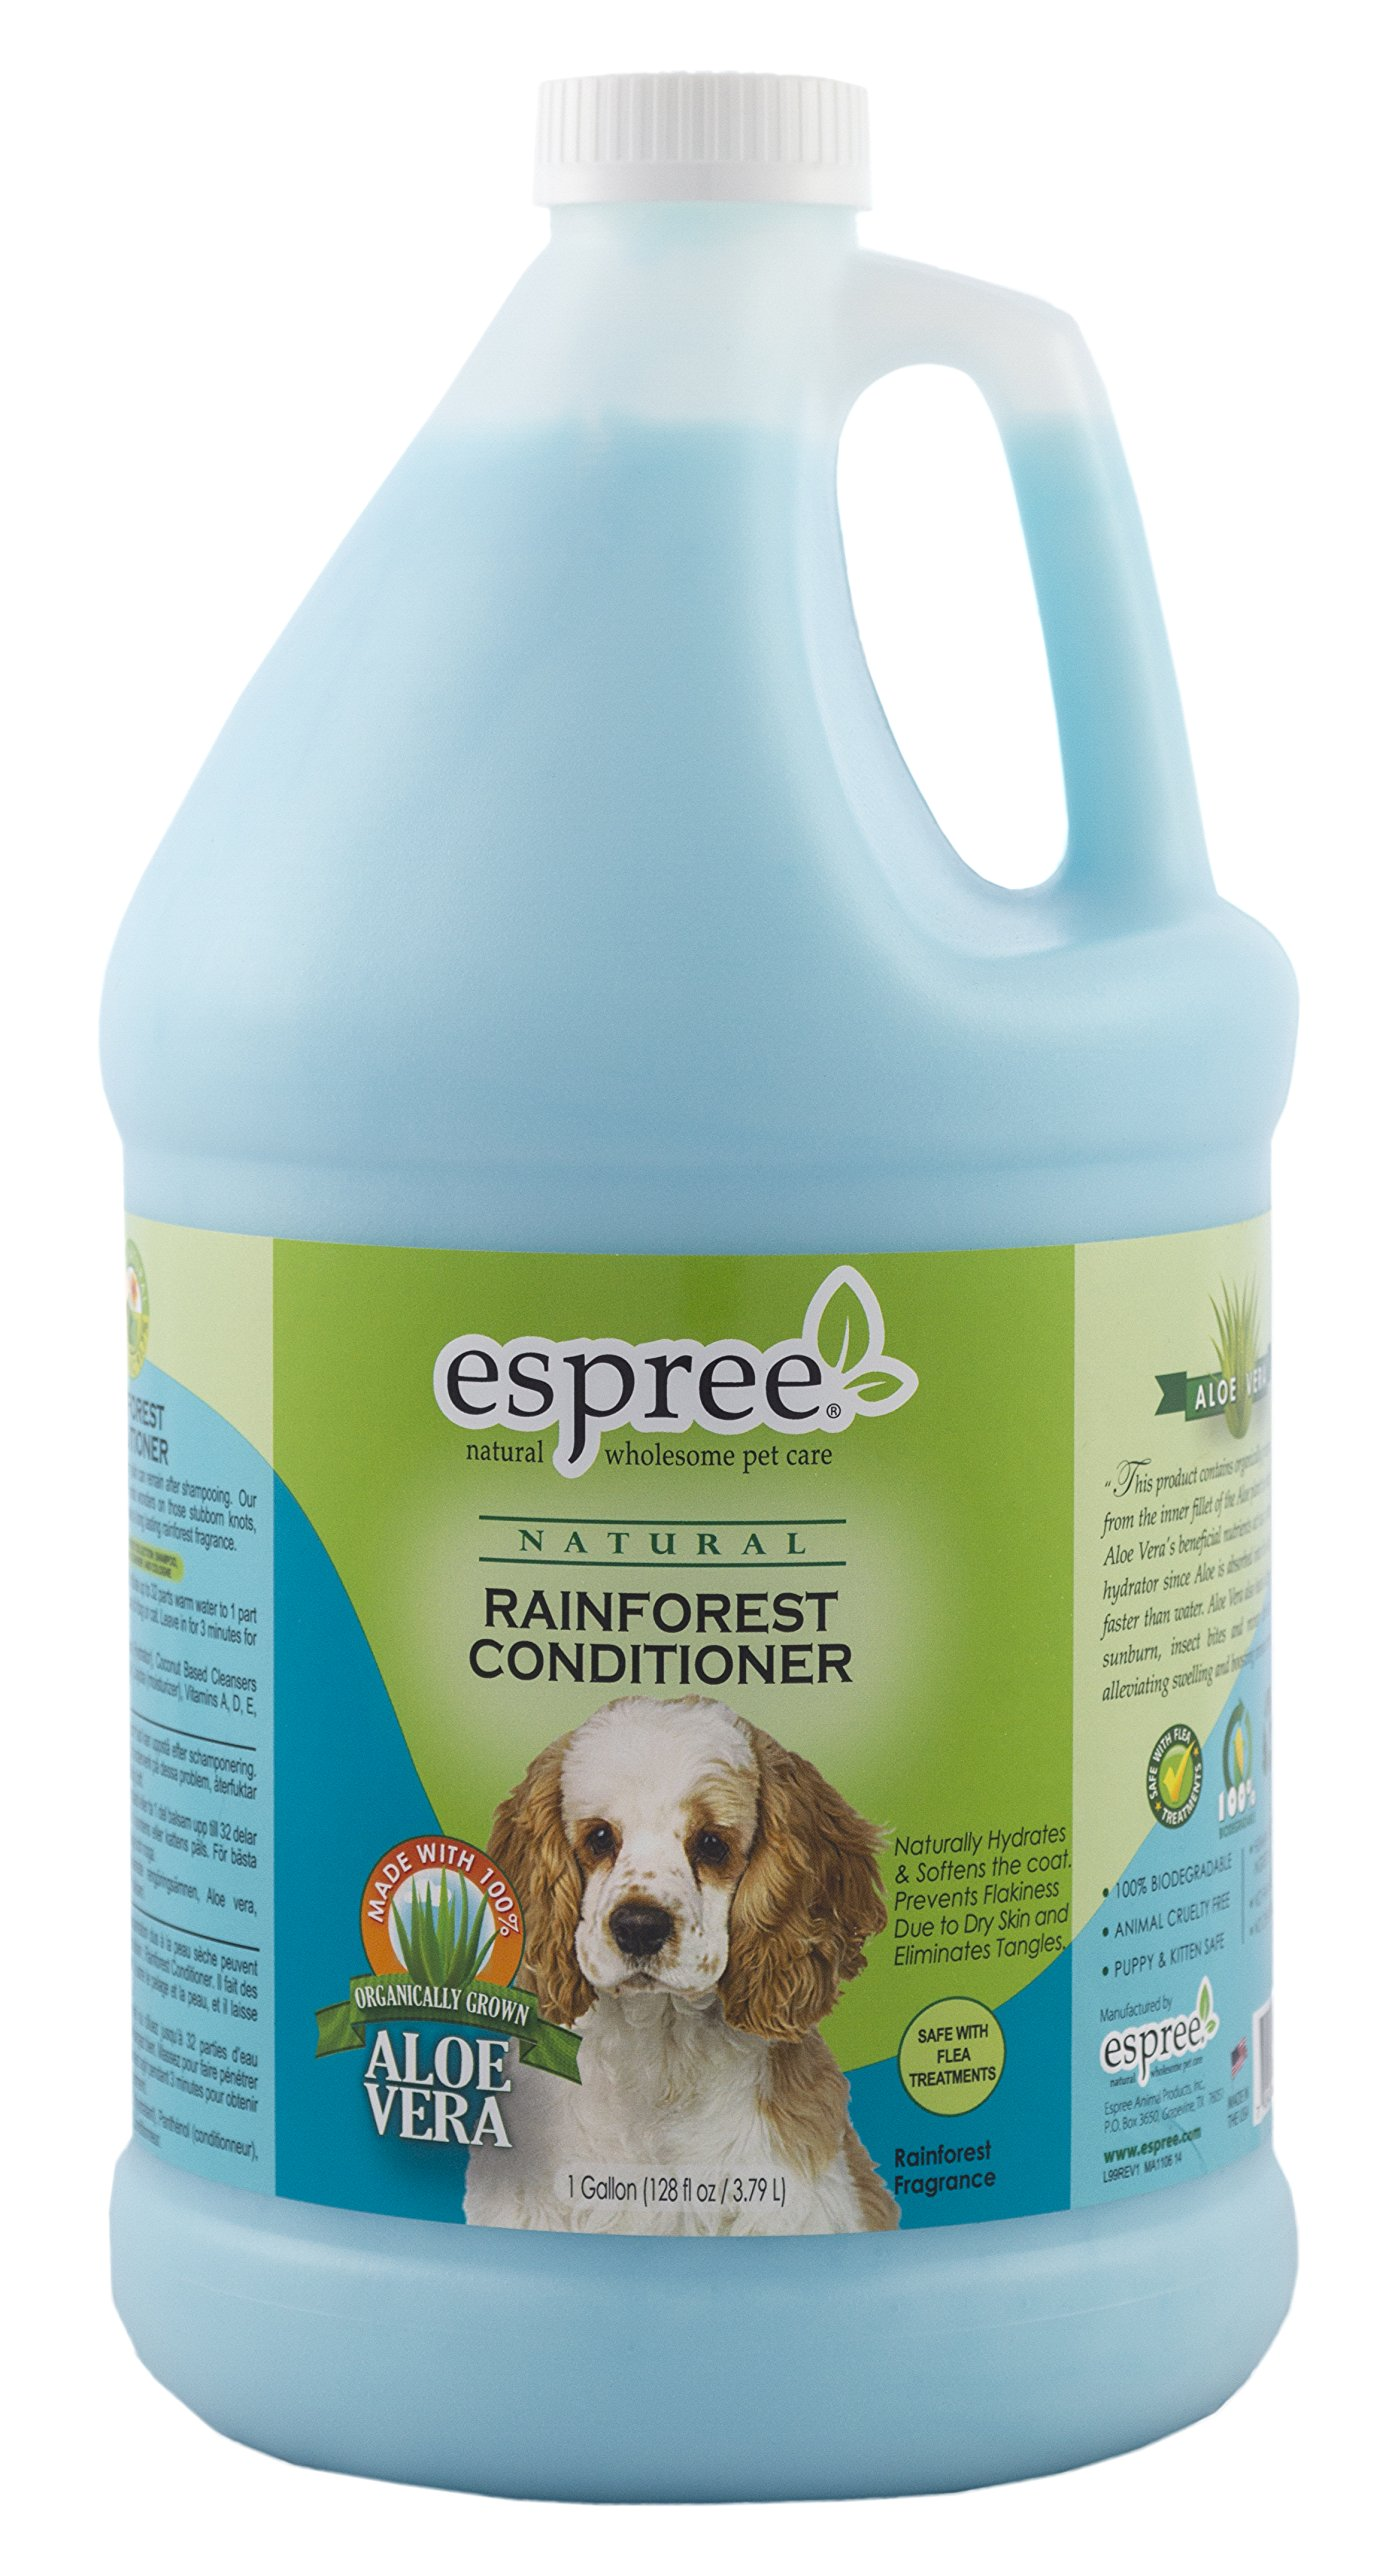 Espree Rainforest Conditioner, 1 gallon